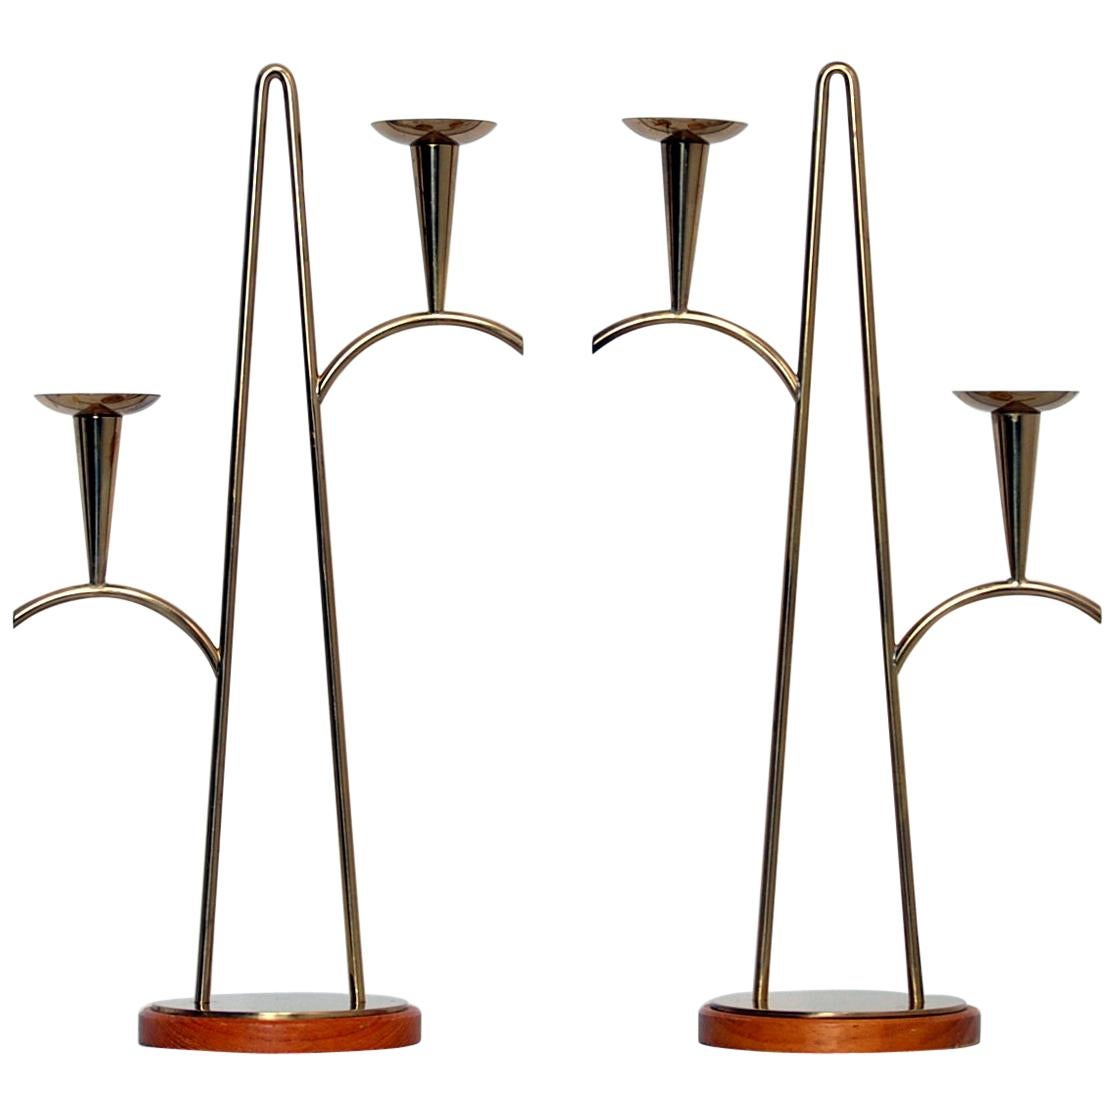 Brass Candleholders by Gunnar Ander for Ystad Metall Sweden